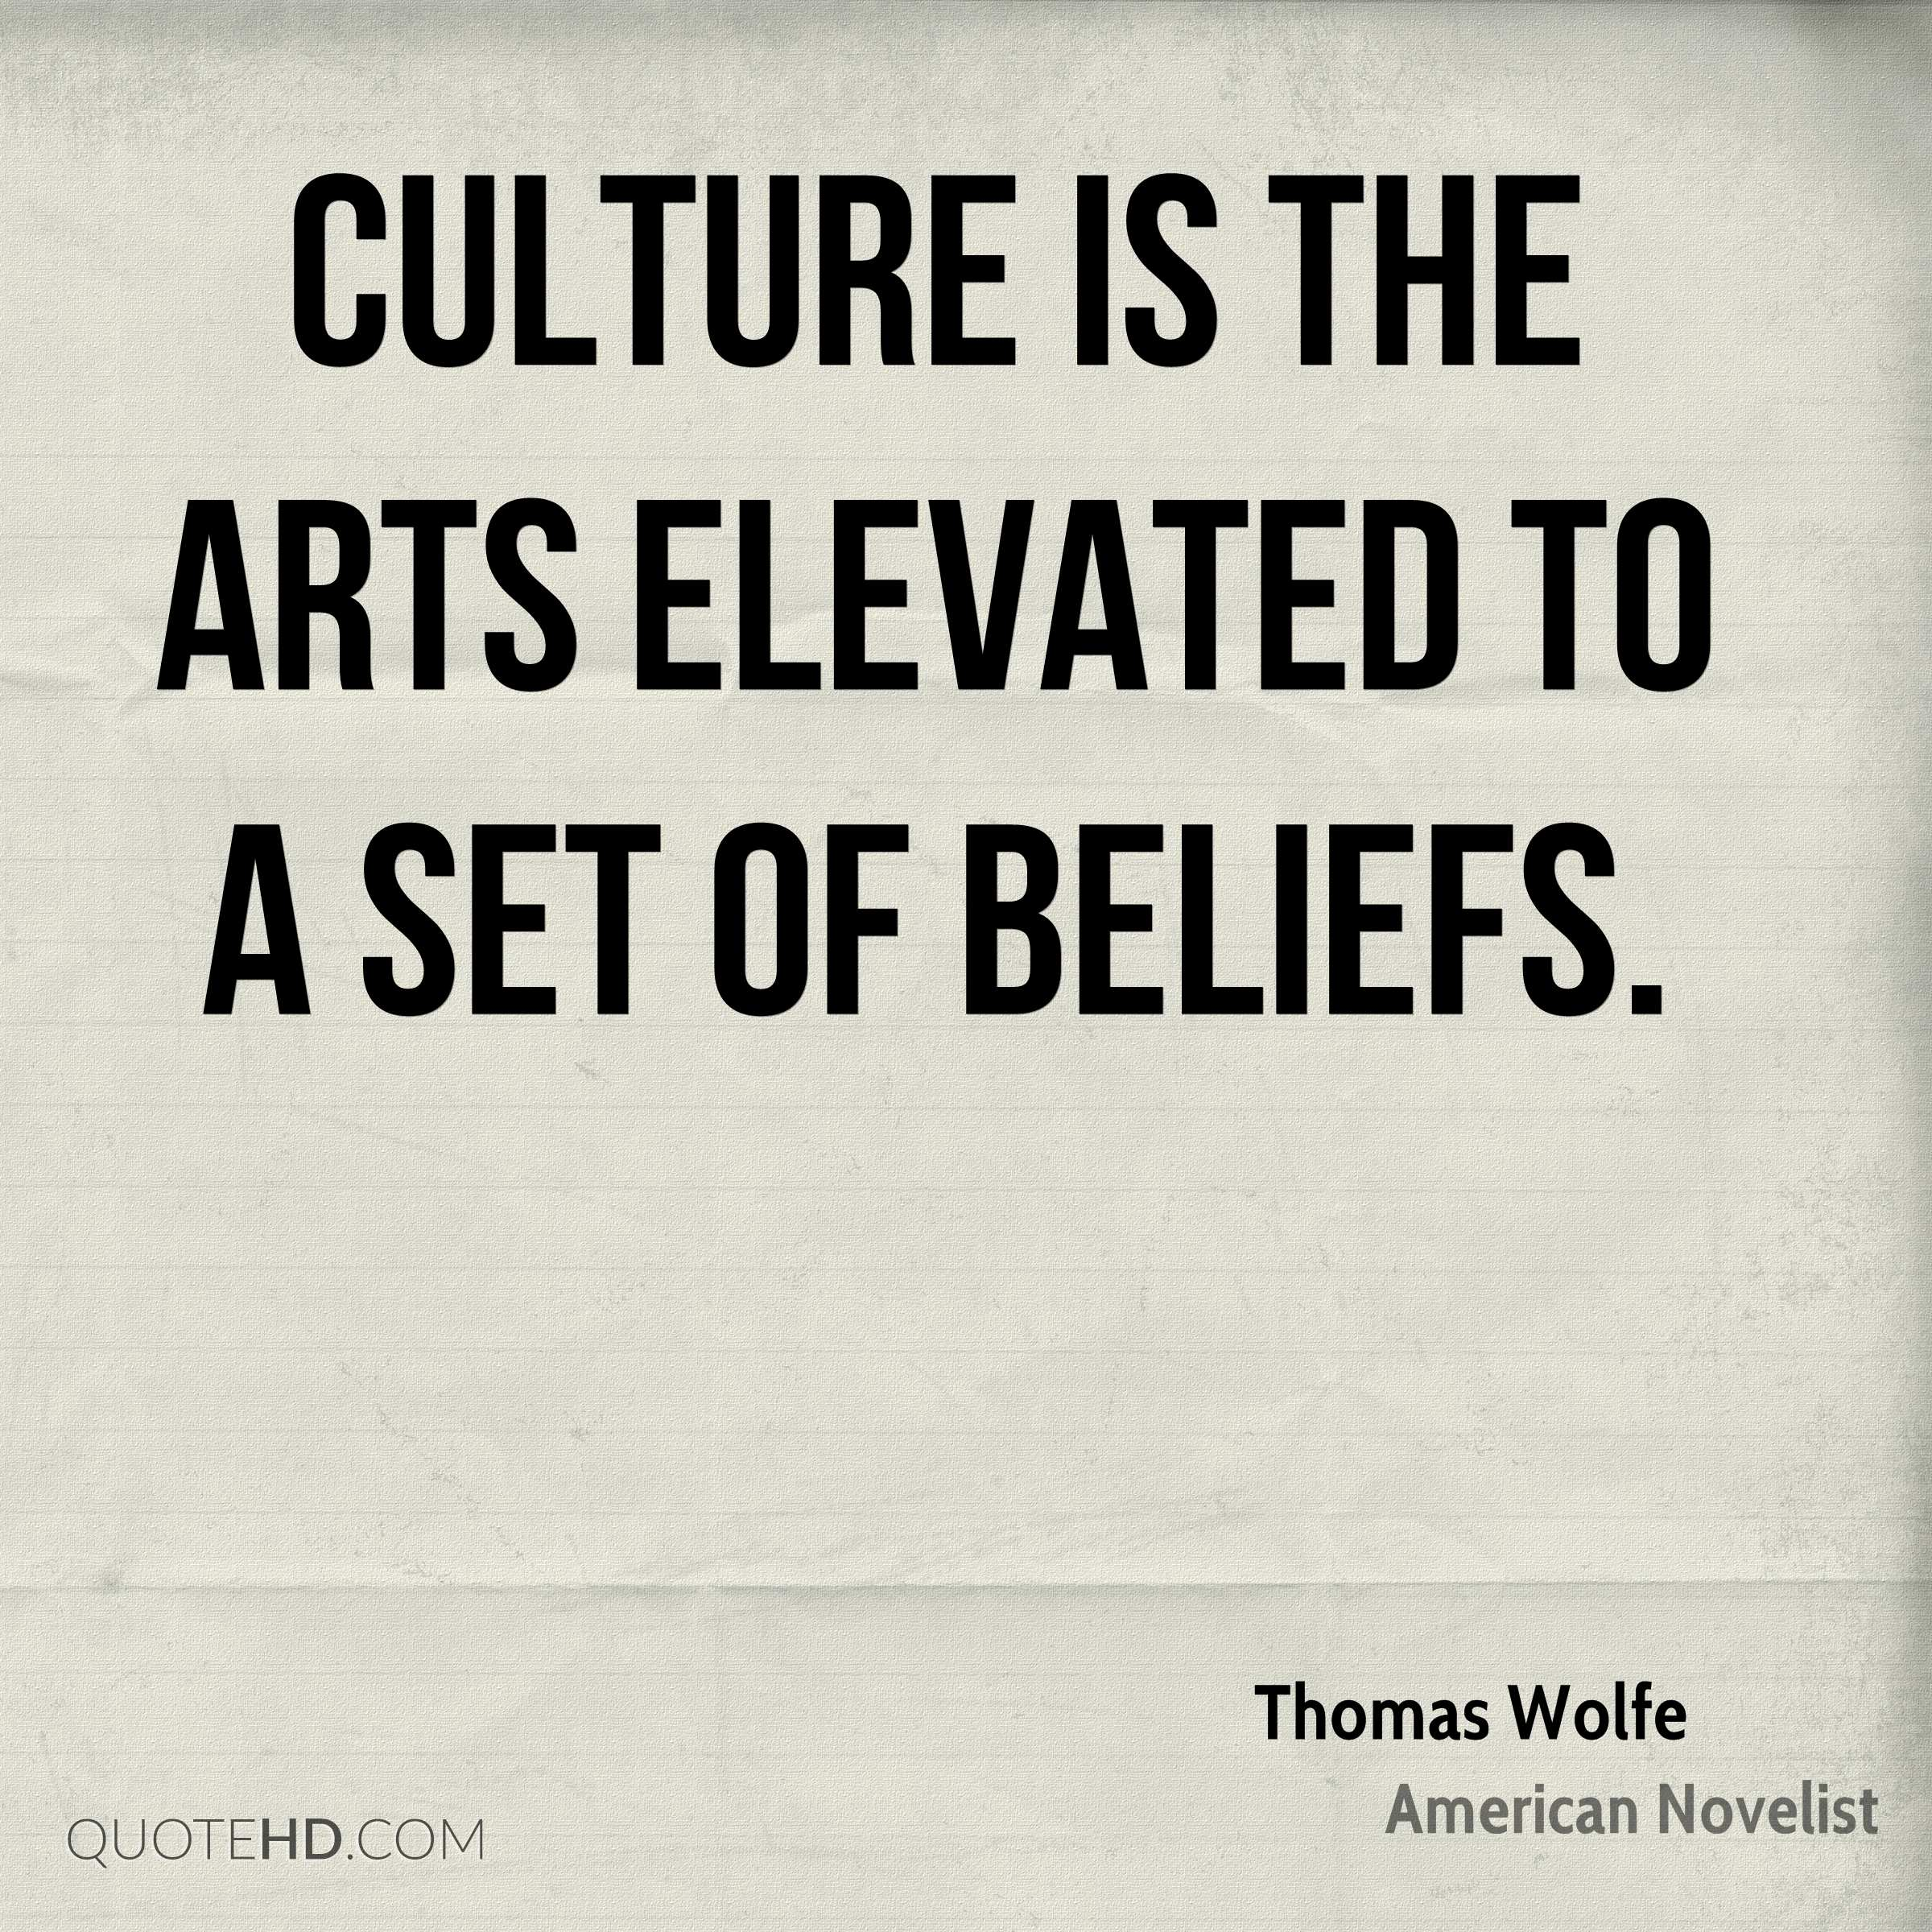 Quotes On Culture Thomas Wolfe Art Quotes  Quotehd